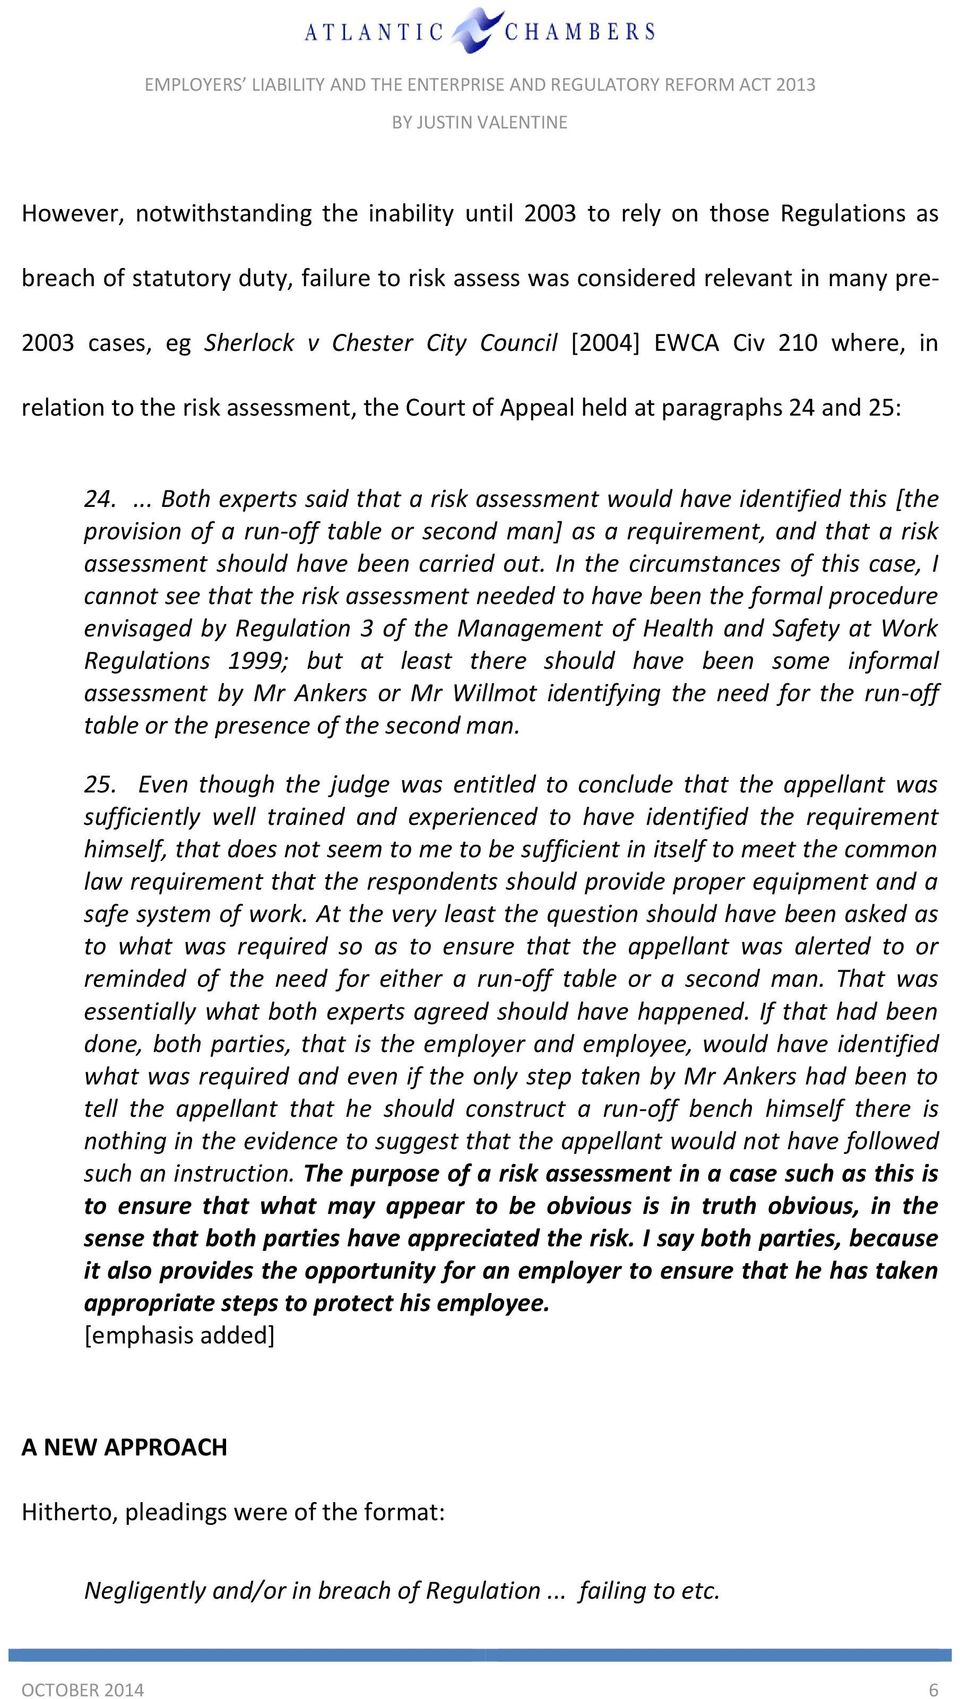 ... Both experts said that a risk assessment would have identified this [the provision of a run-off table or second man] as a requirement, and that a risk assessment should have been carried out.